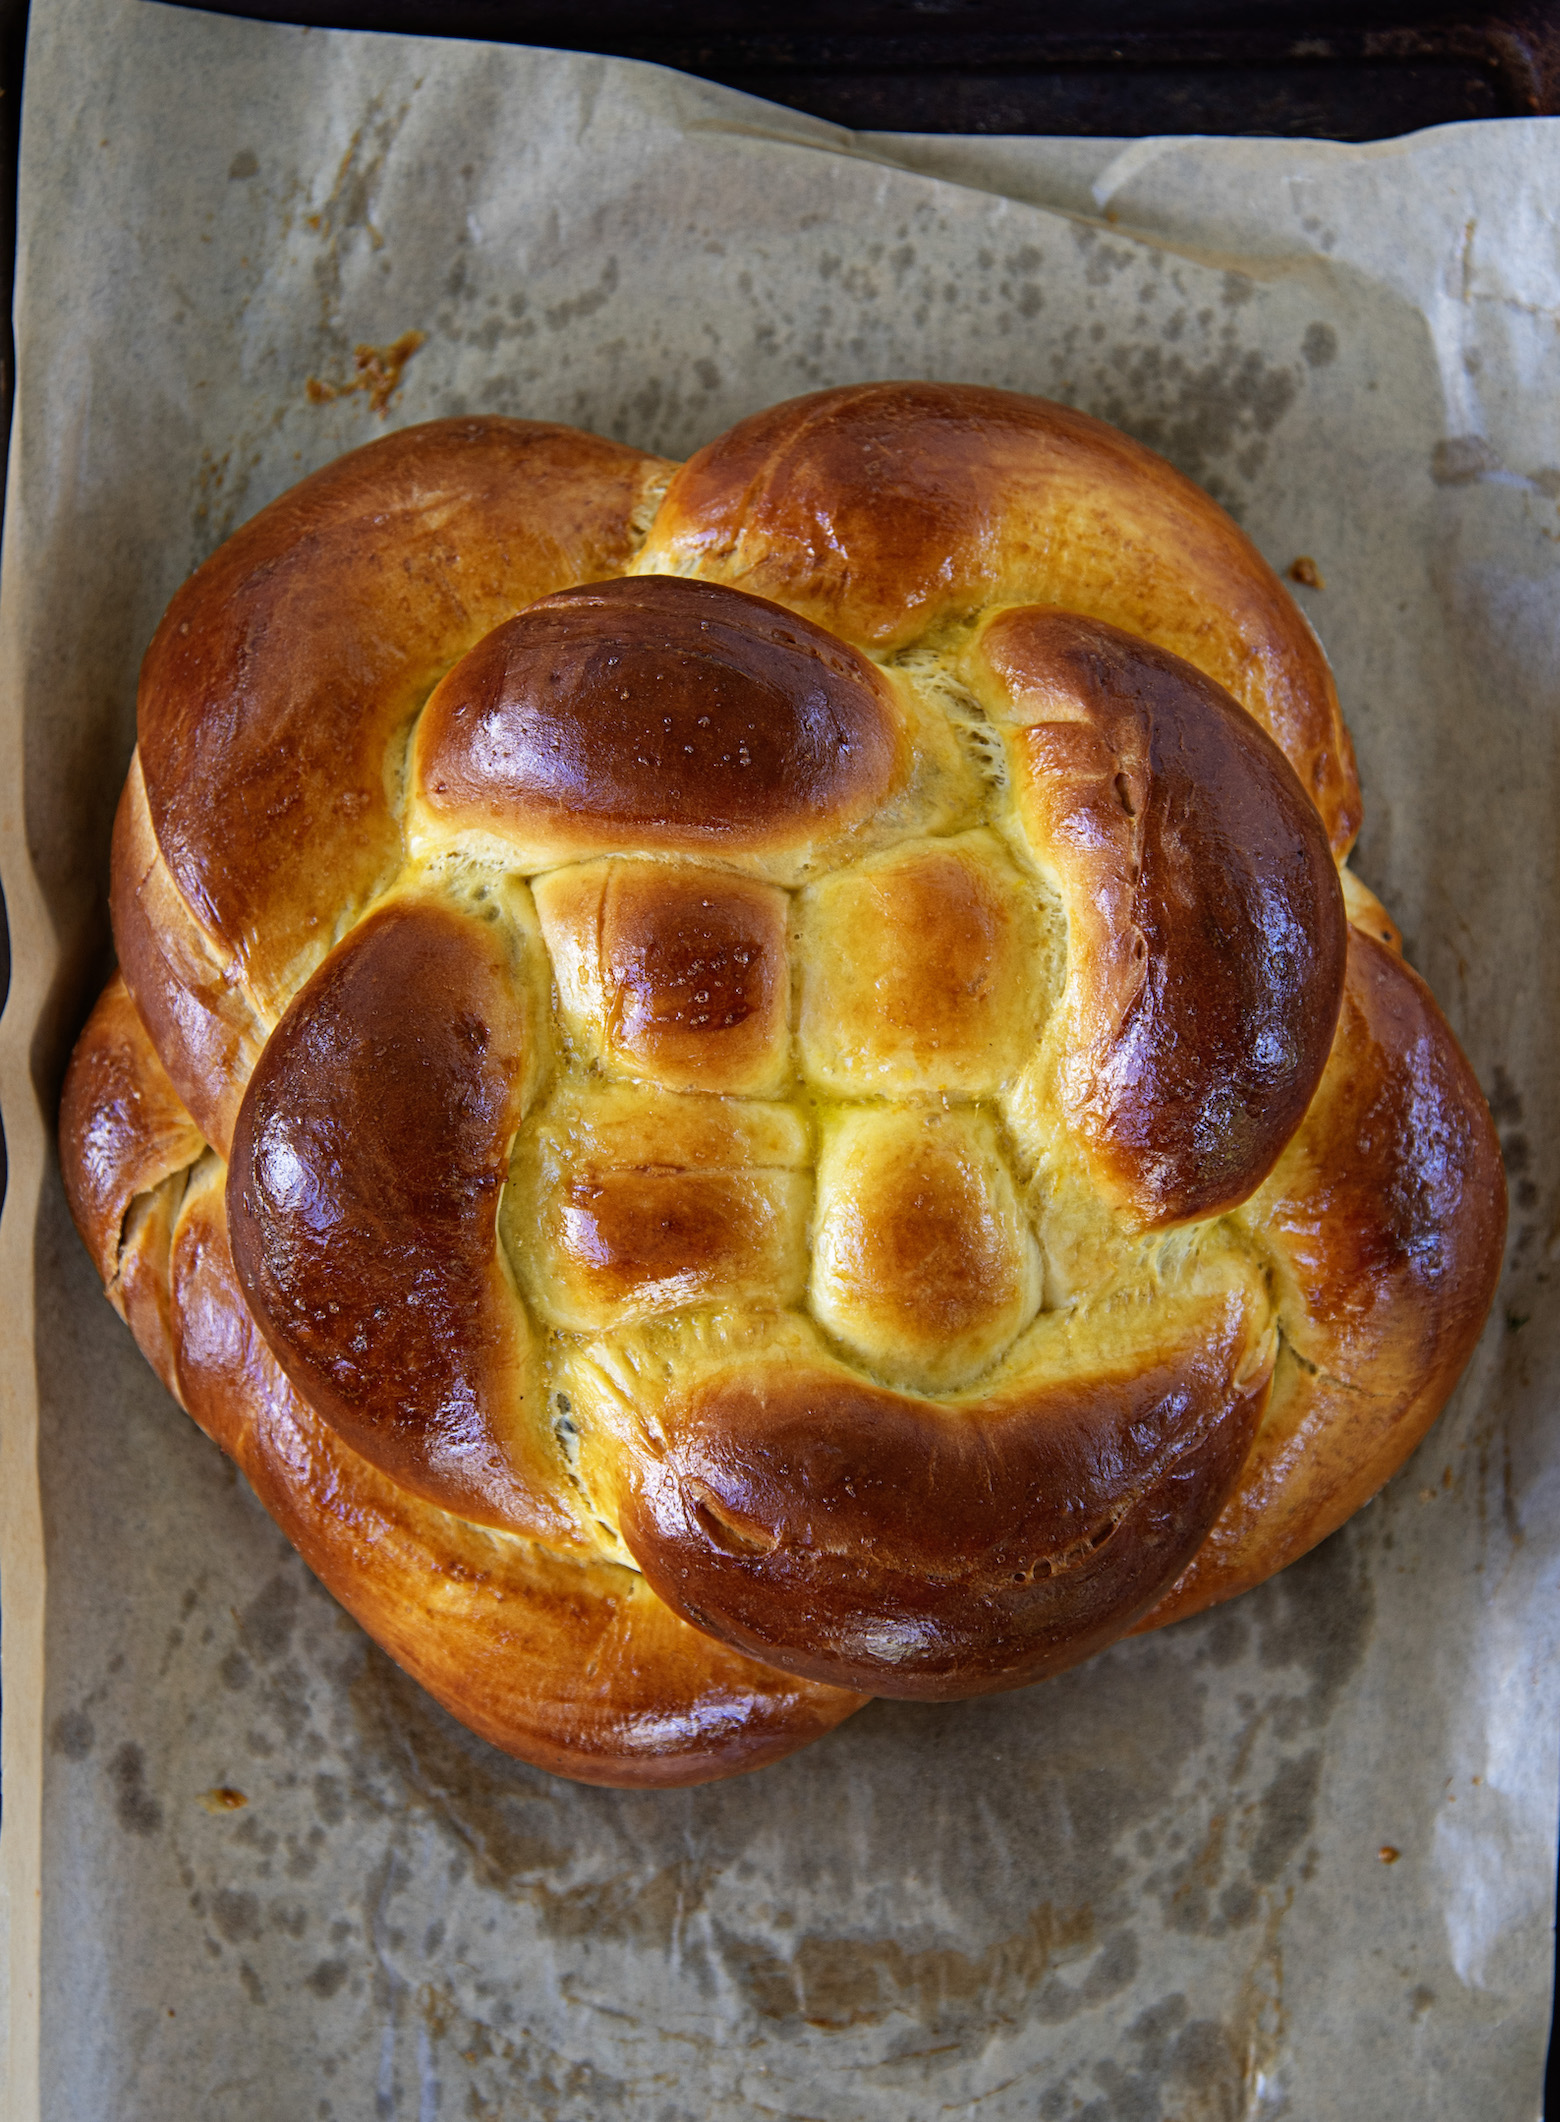 Orange Blossom Chocolate Challah Bread